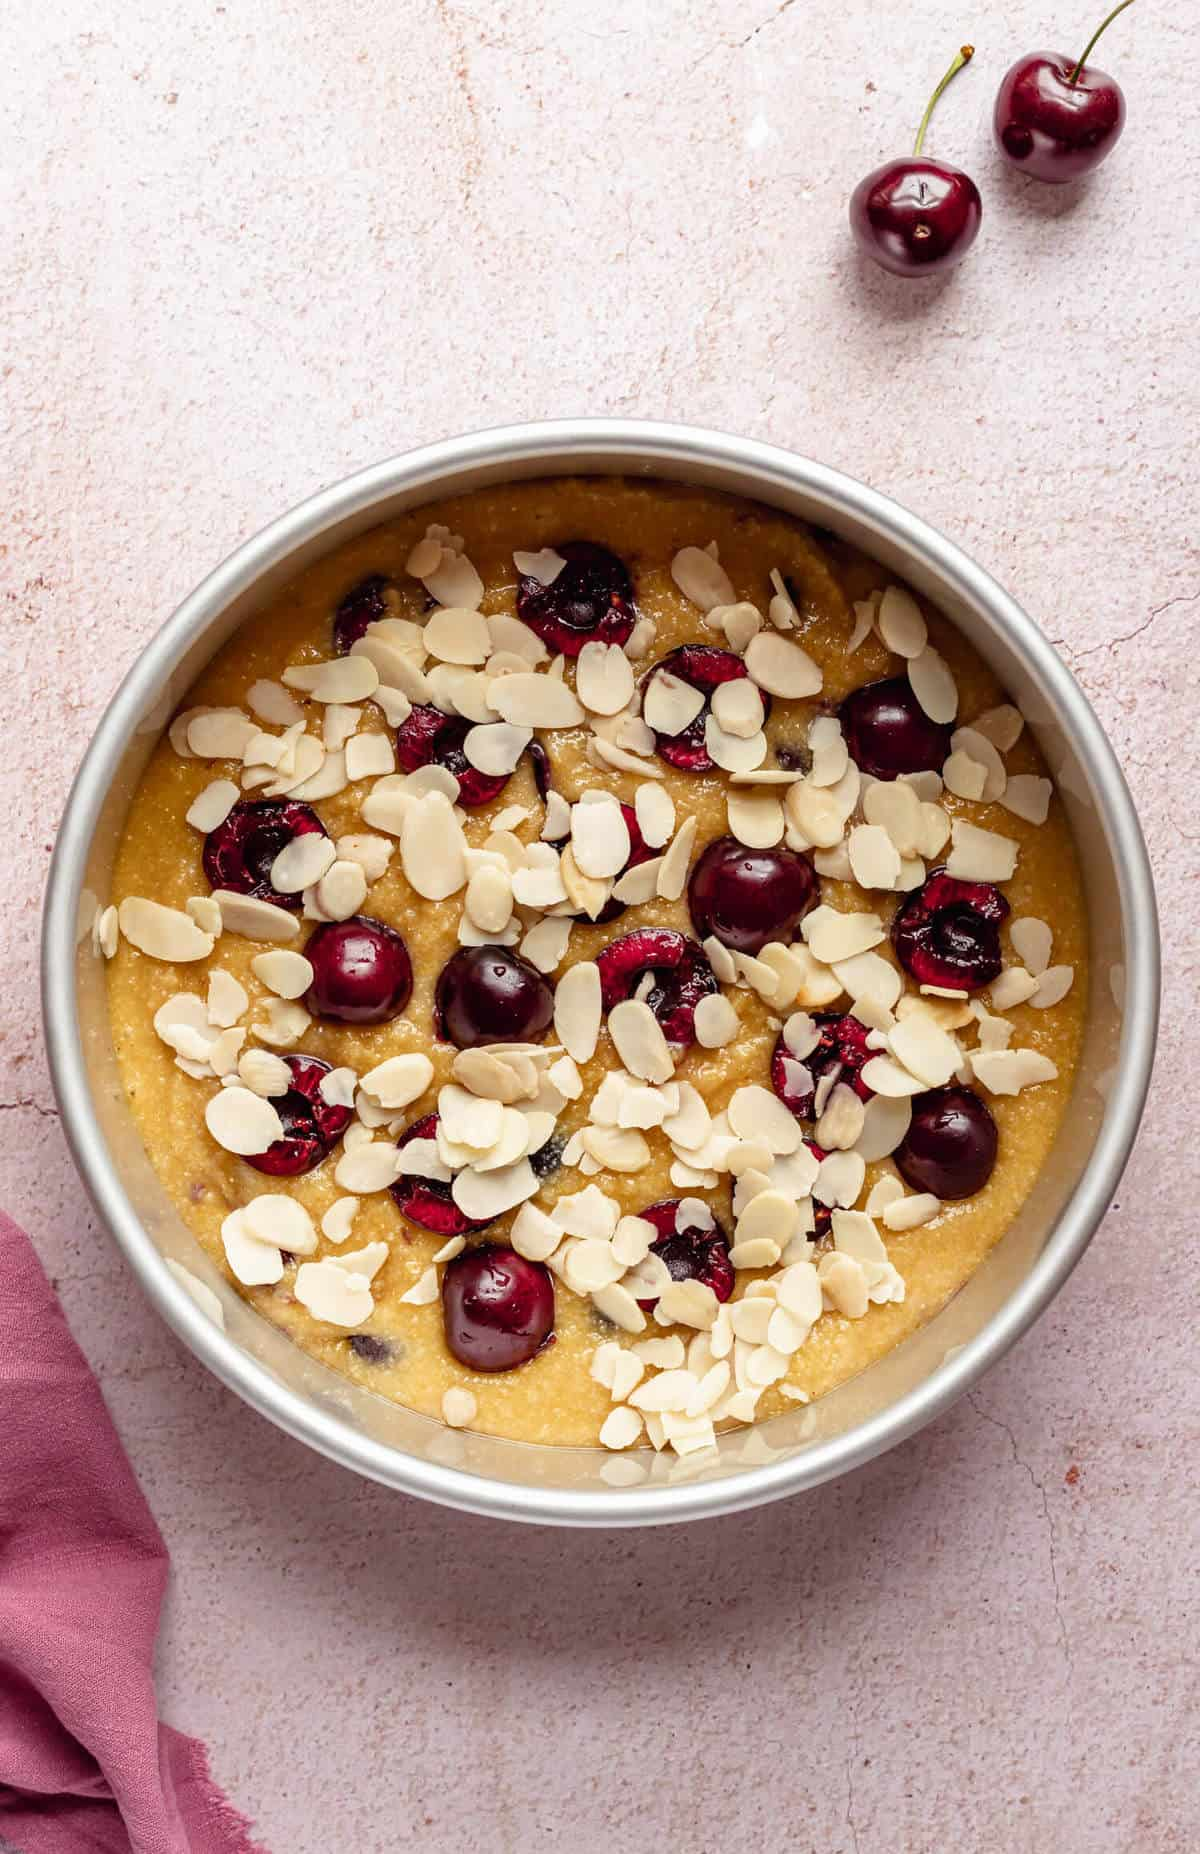 a cake tin filled with unbaked cake batter and topped with halved cherries and flaked almonds